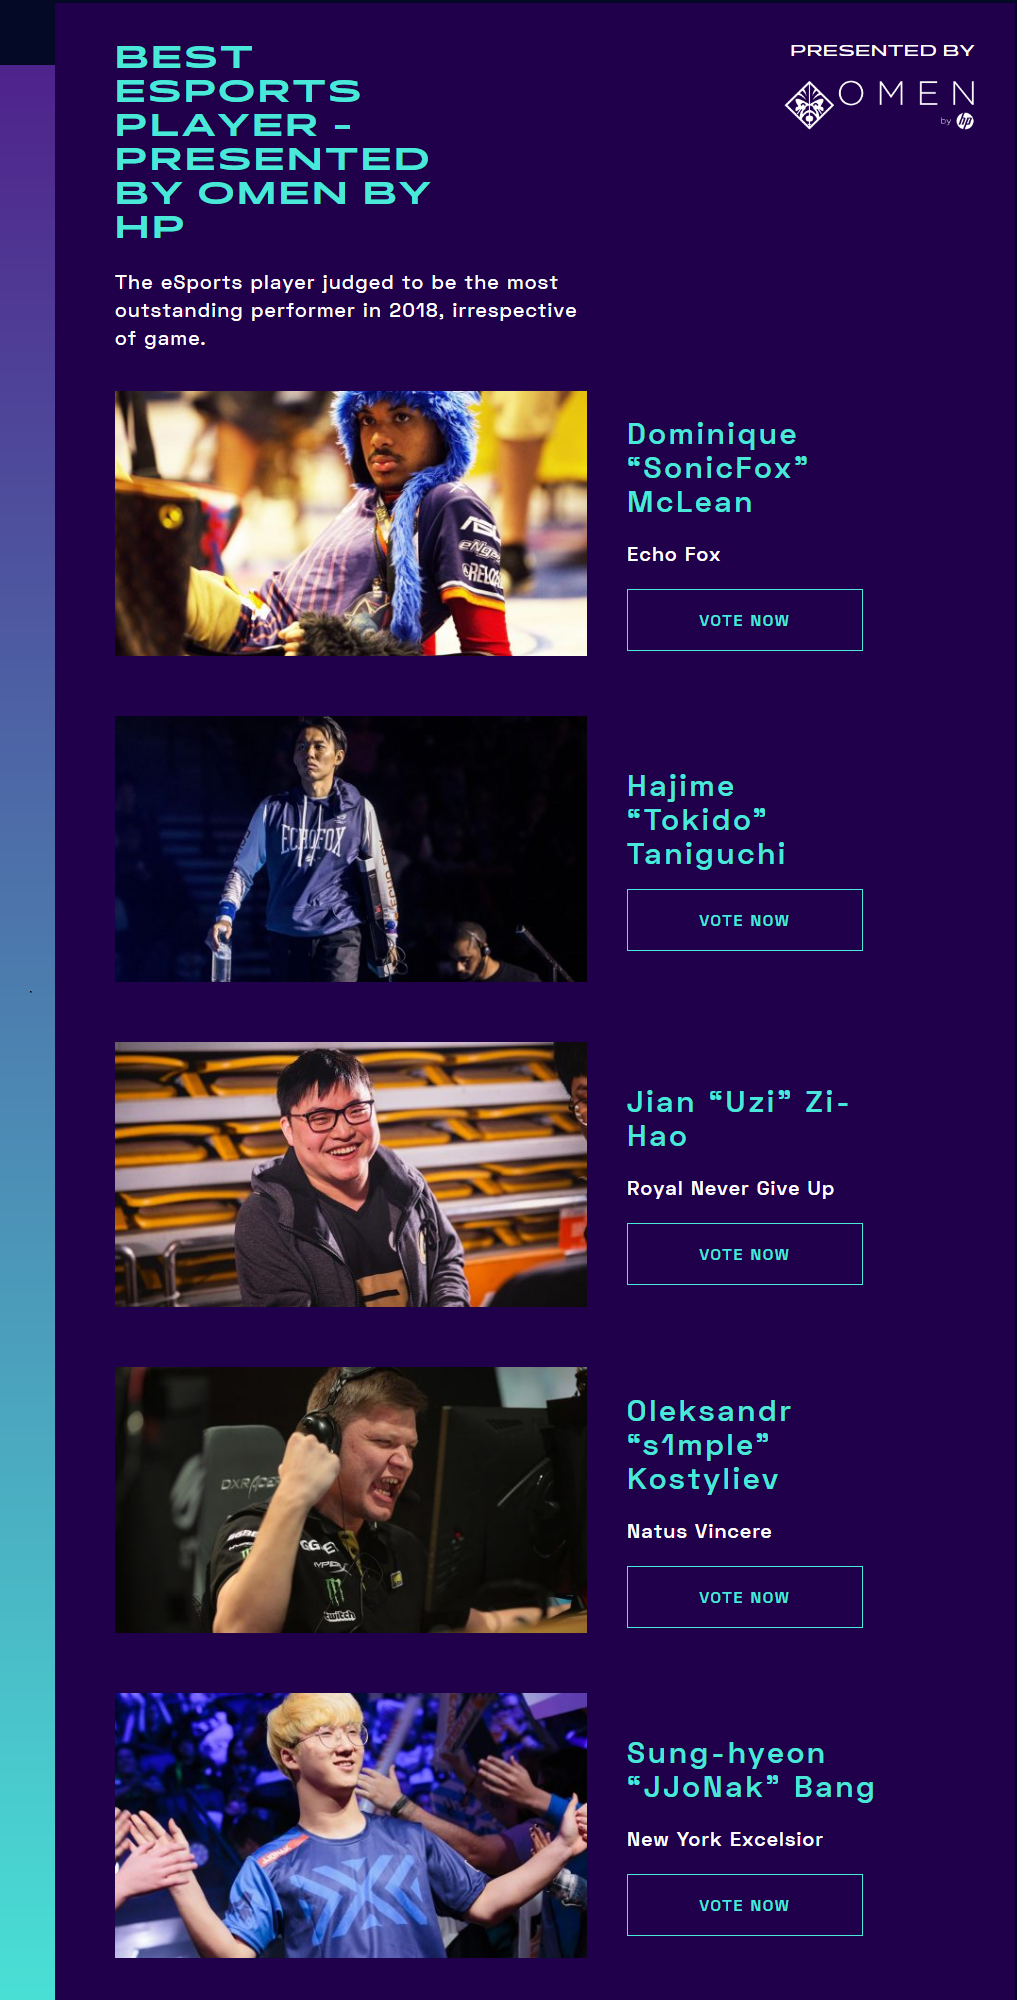 RNG Uzi Nominated for the Best Esports Player at The Game Awards 2018